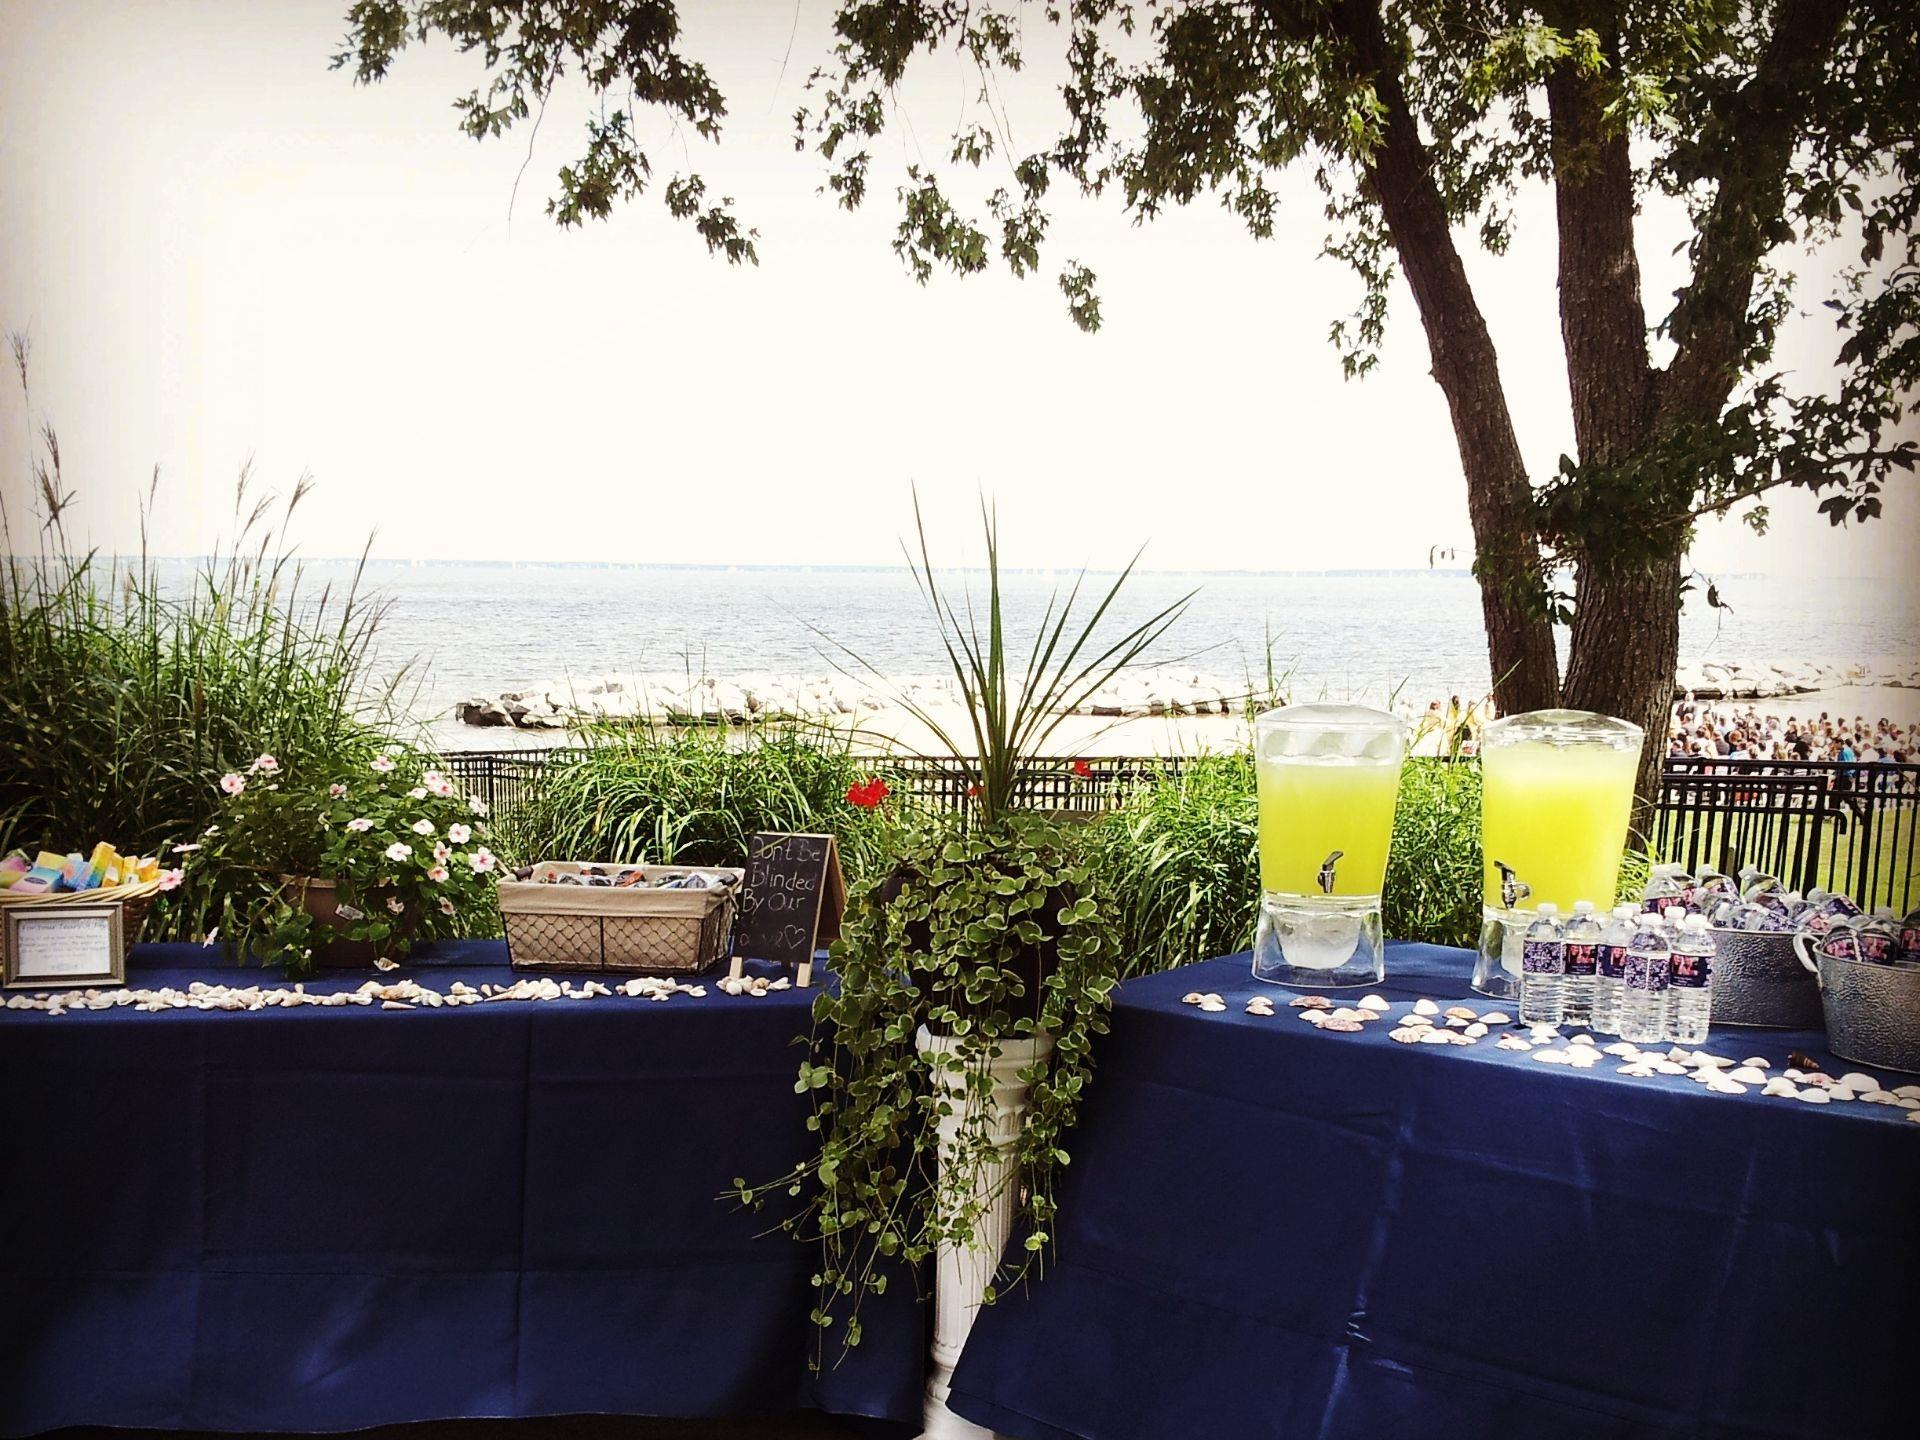 Tables set up with containers of lemonade and a backdrop of a beach